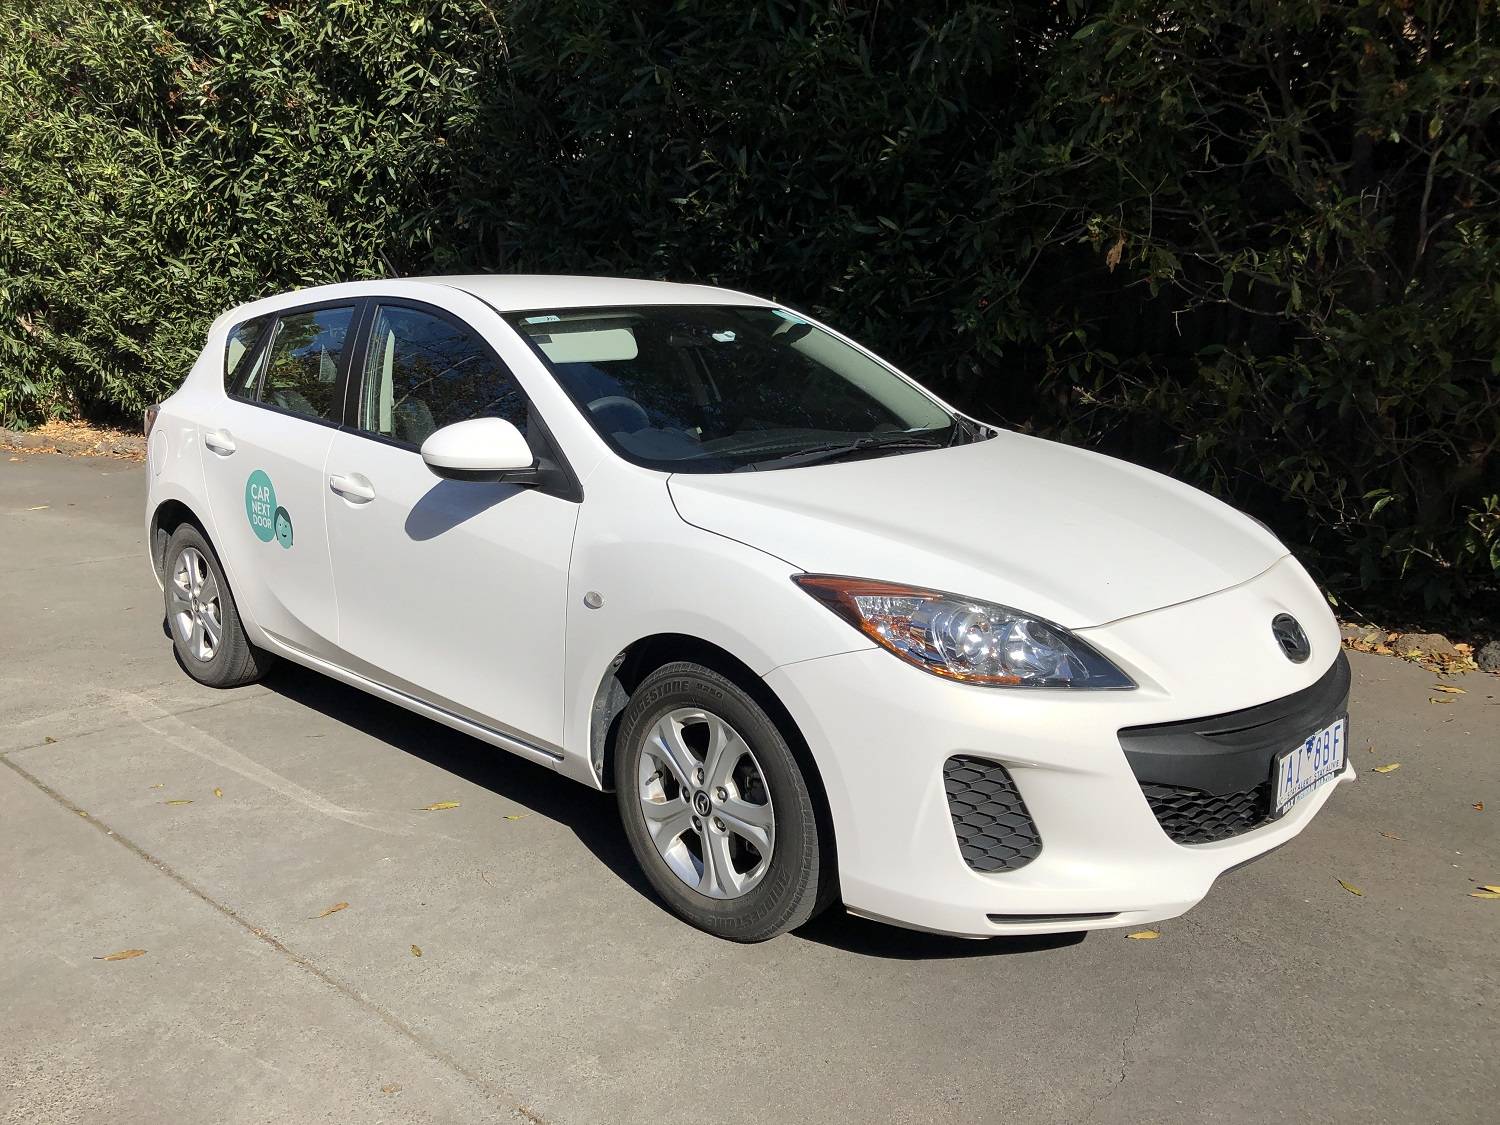 Picture of Katherine's 2013 Mazda 3